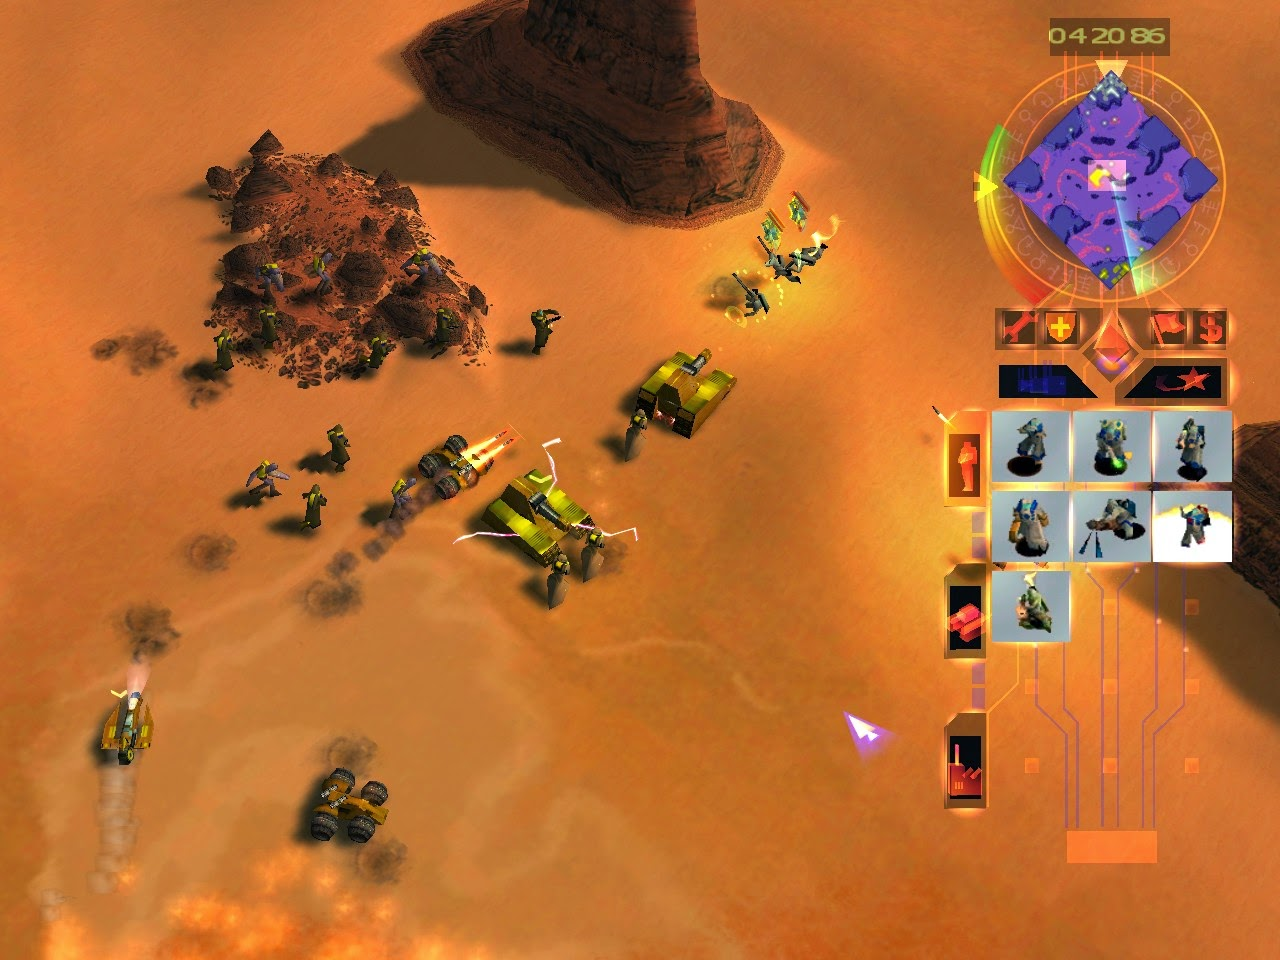 dune 2 free download deutsch